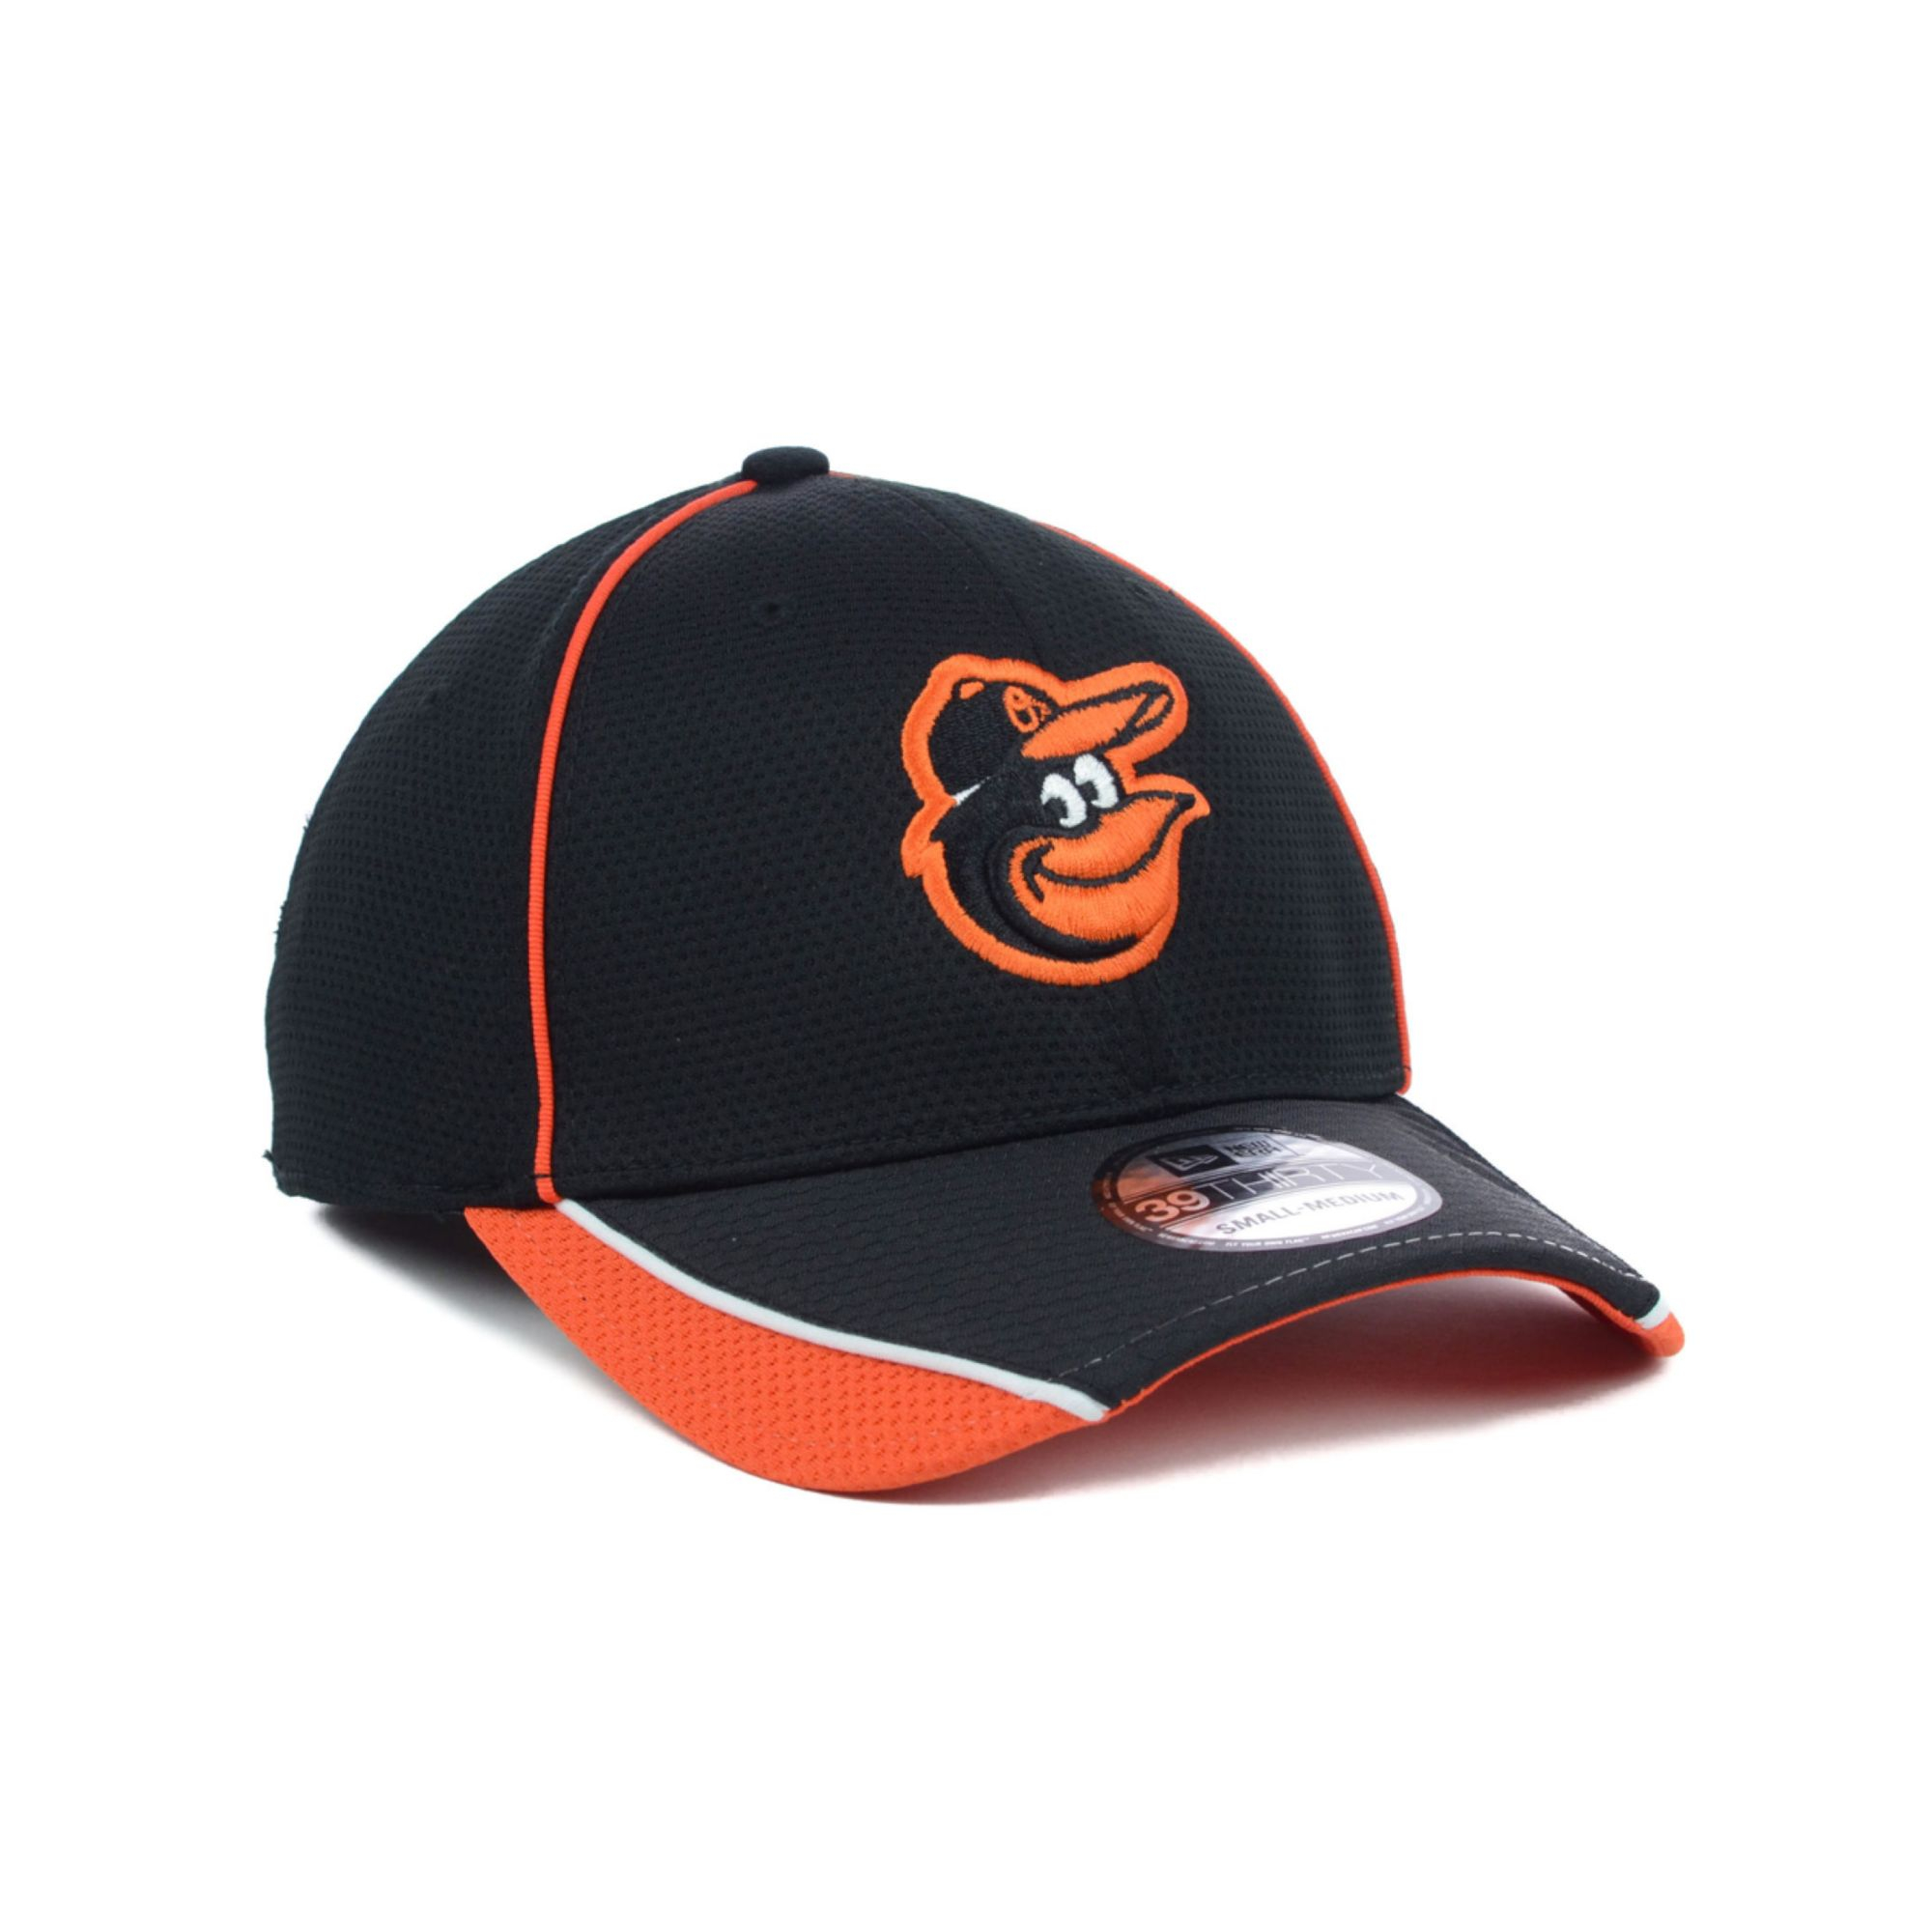 quality design 2530e 20bda switzerland lyst ktz baltimore orioles mlb pipe slide 39thirty cap in black  7c0d8 52d34